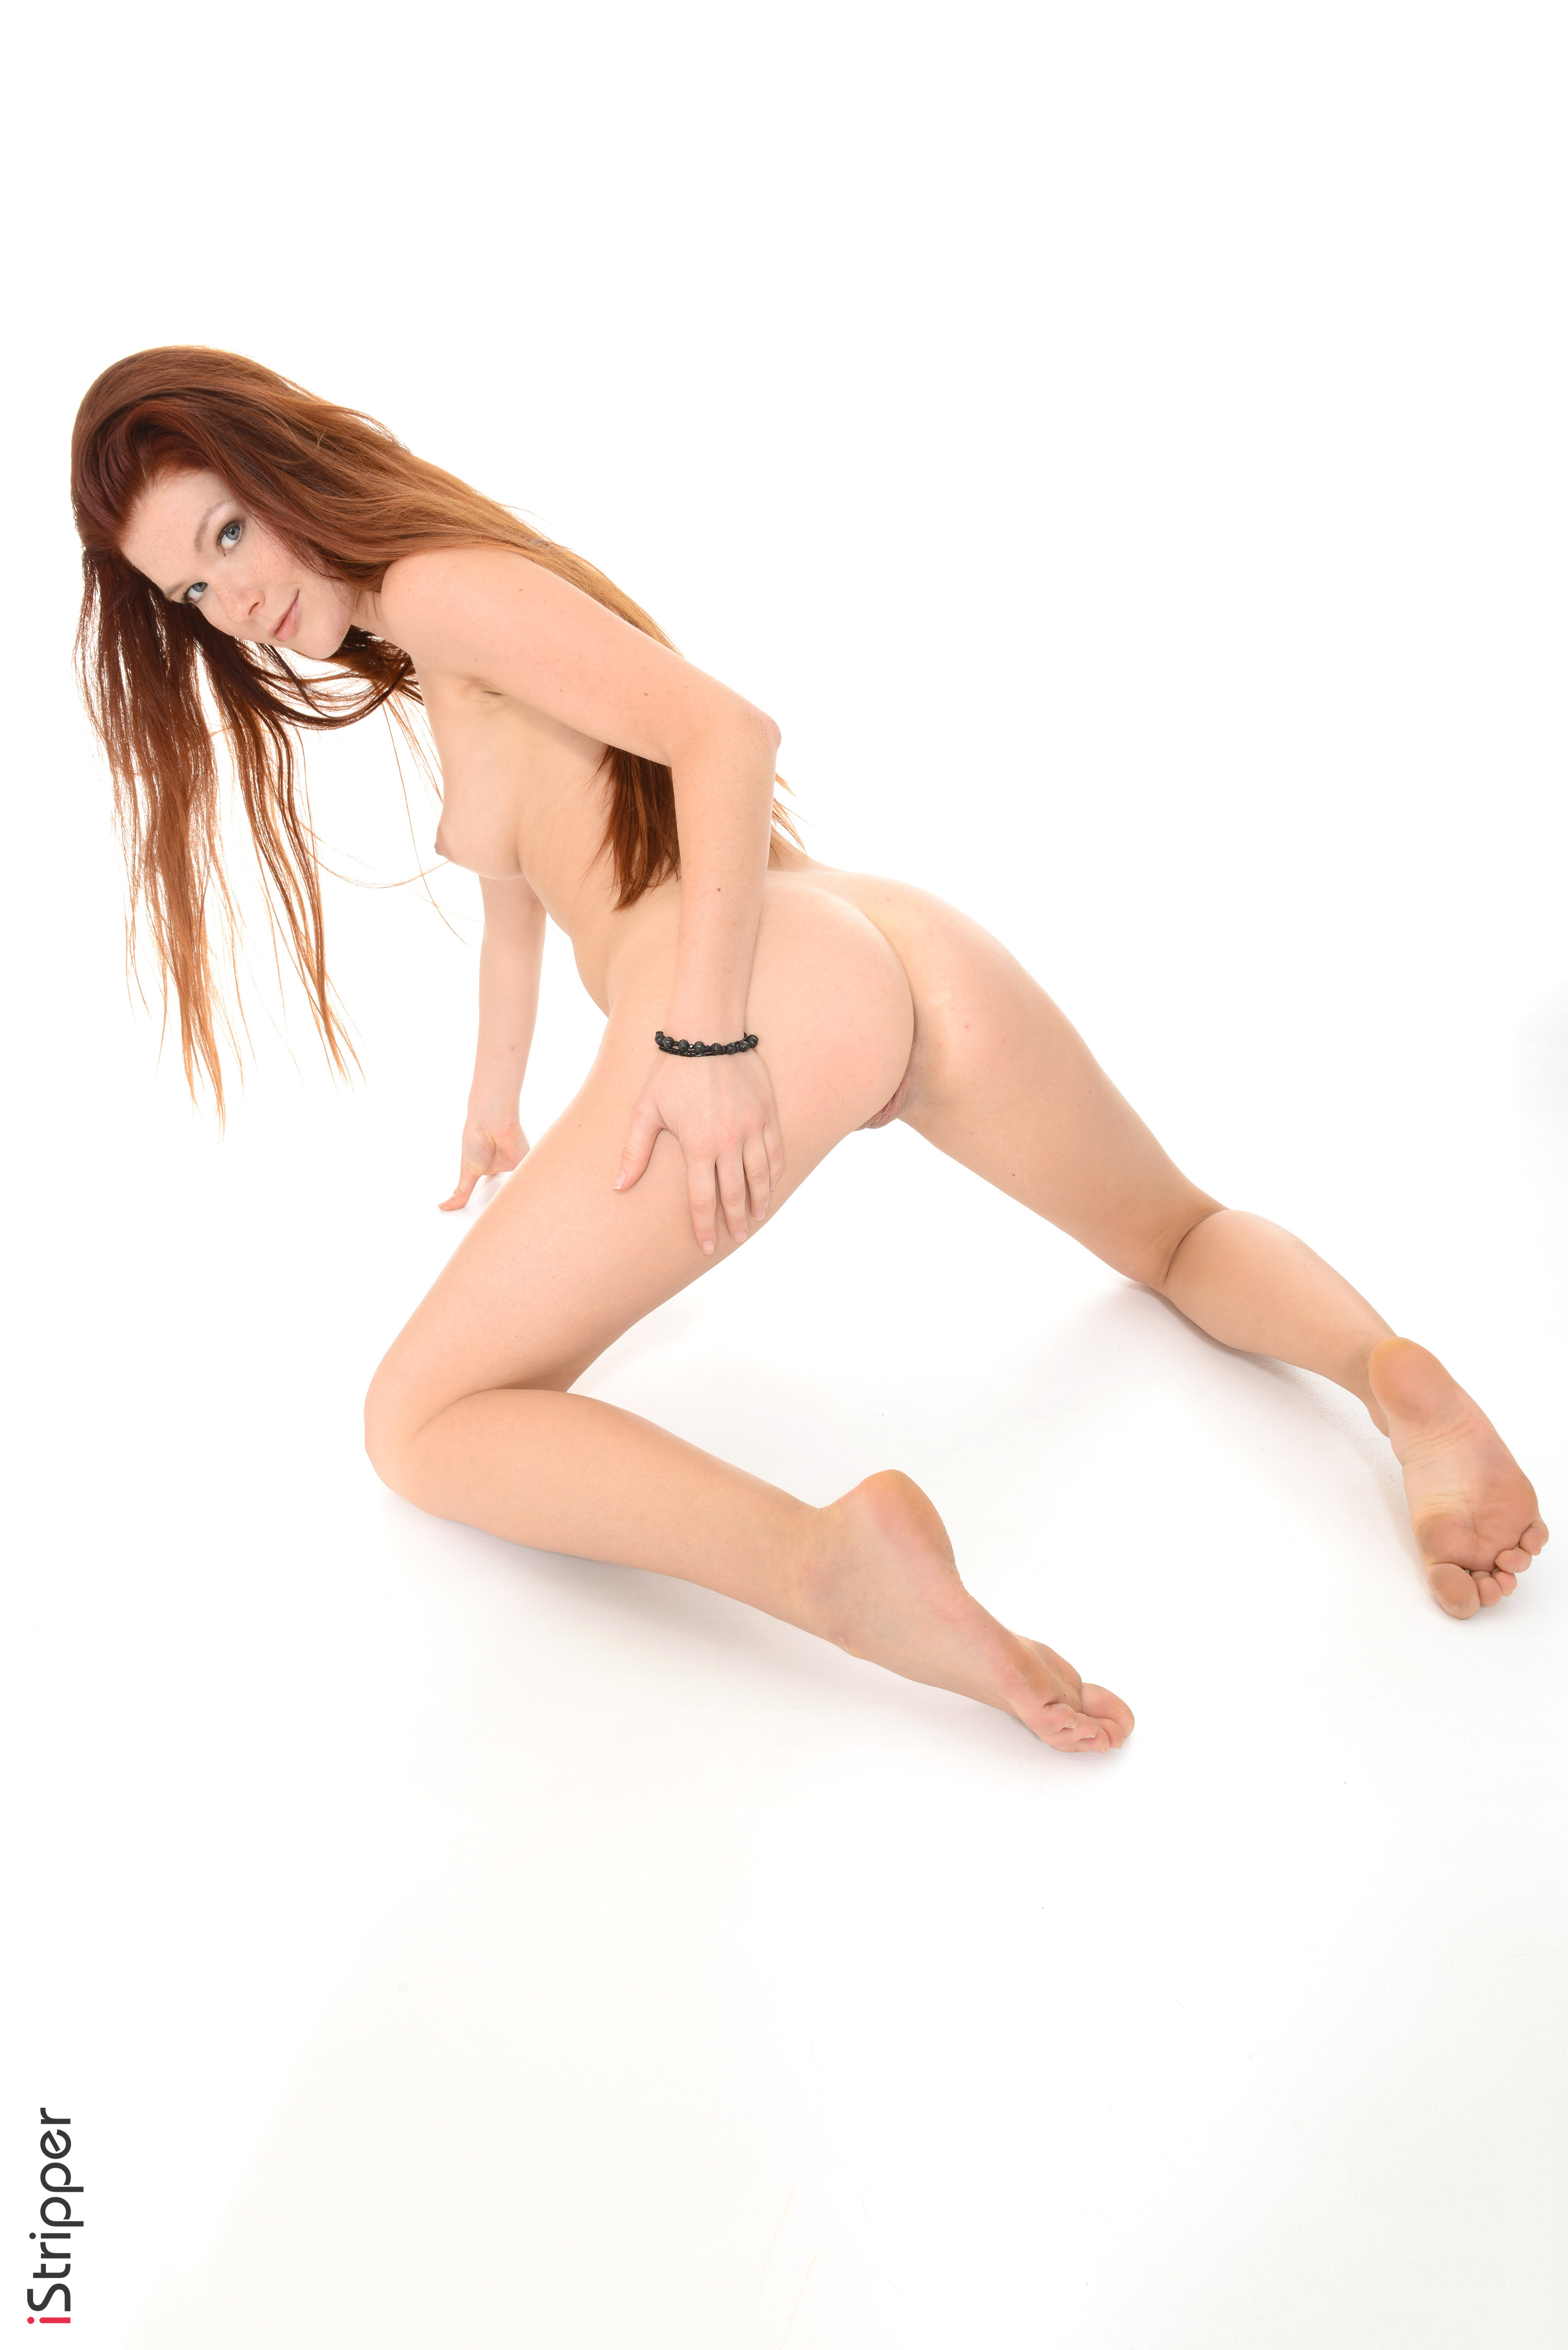 hot naked wallpapers